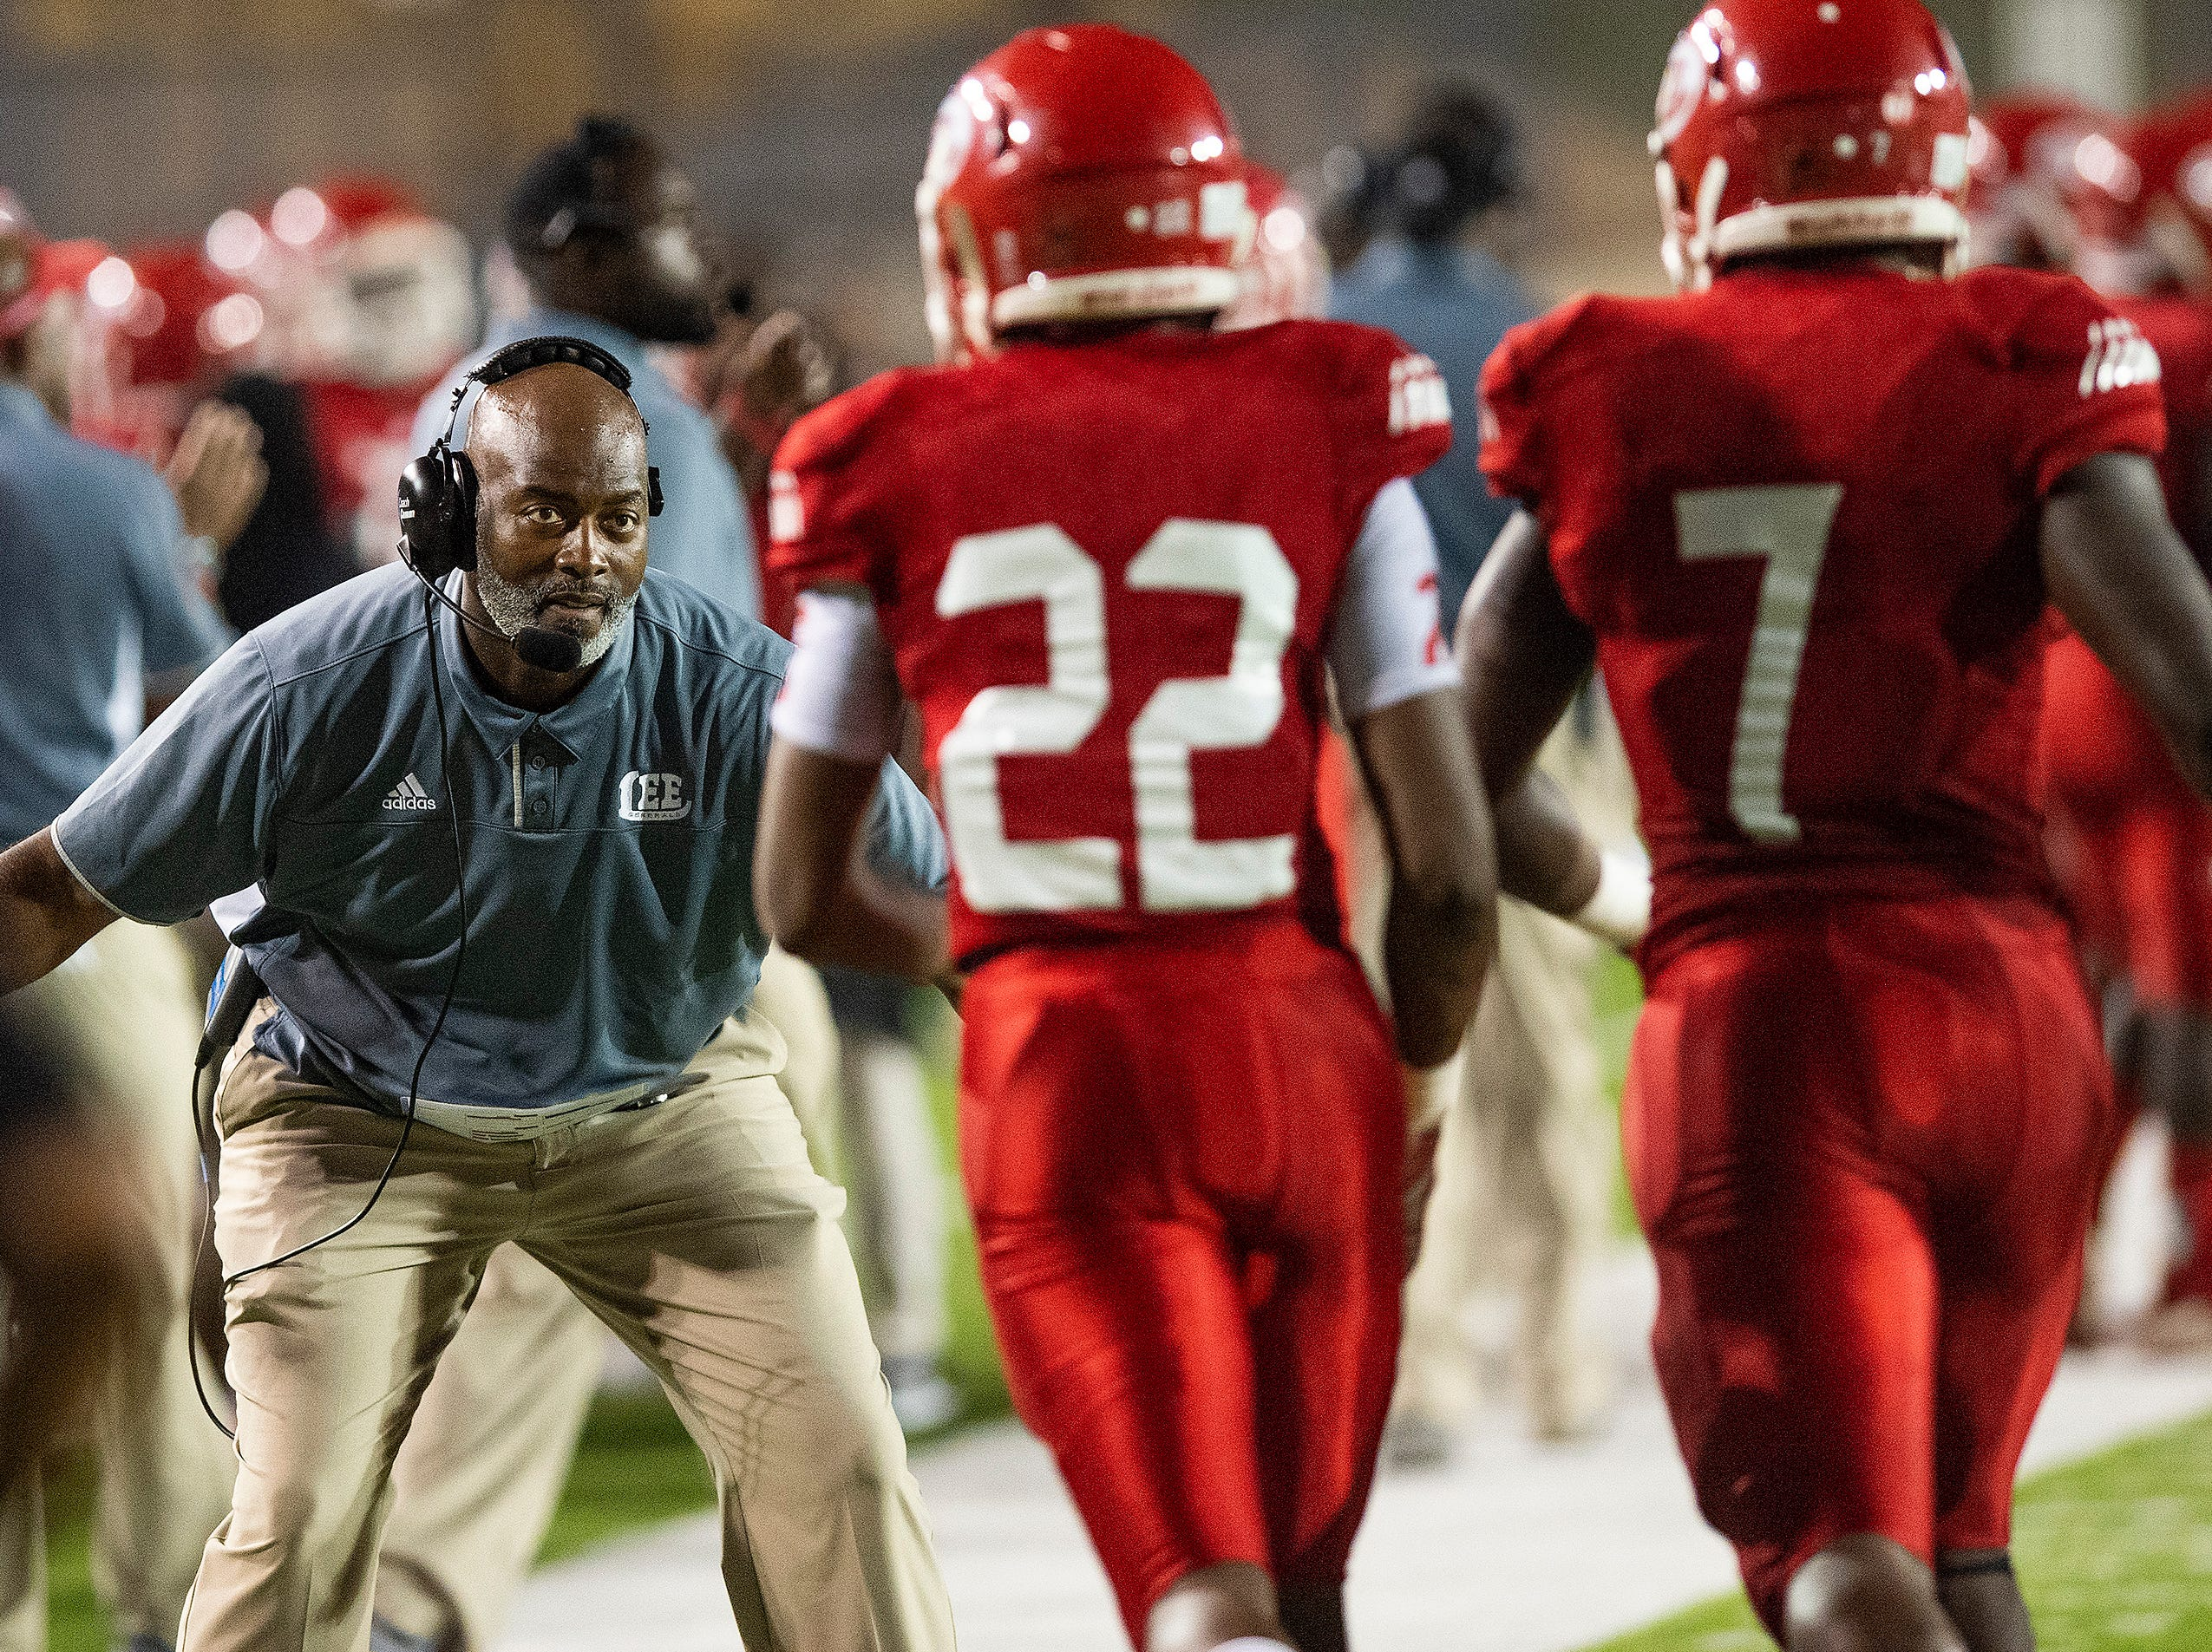 Lee coach Tyrone Rogers coaches against Auburn in first half action at Cramton Bowl in Montgomery, Ala., on Thursday September 13, 2018.